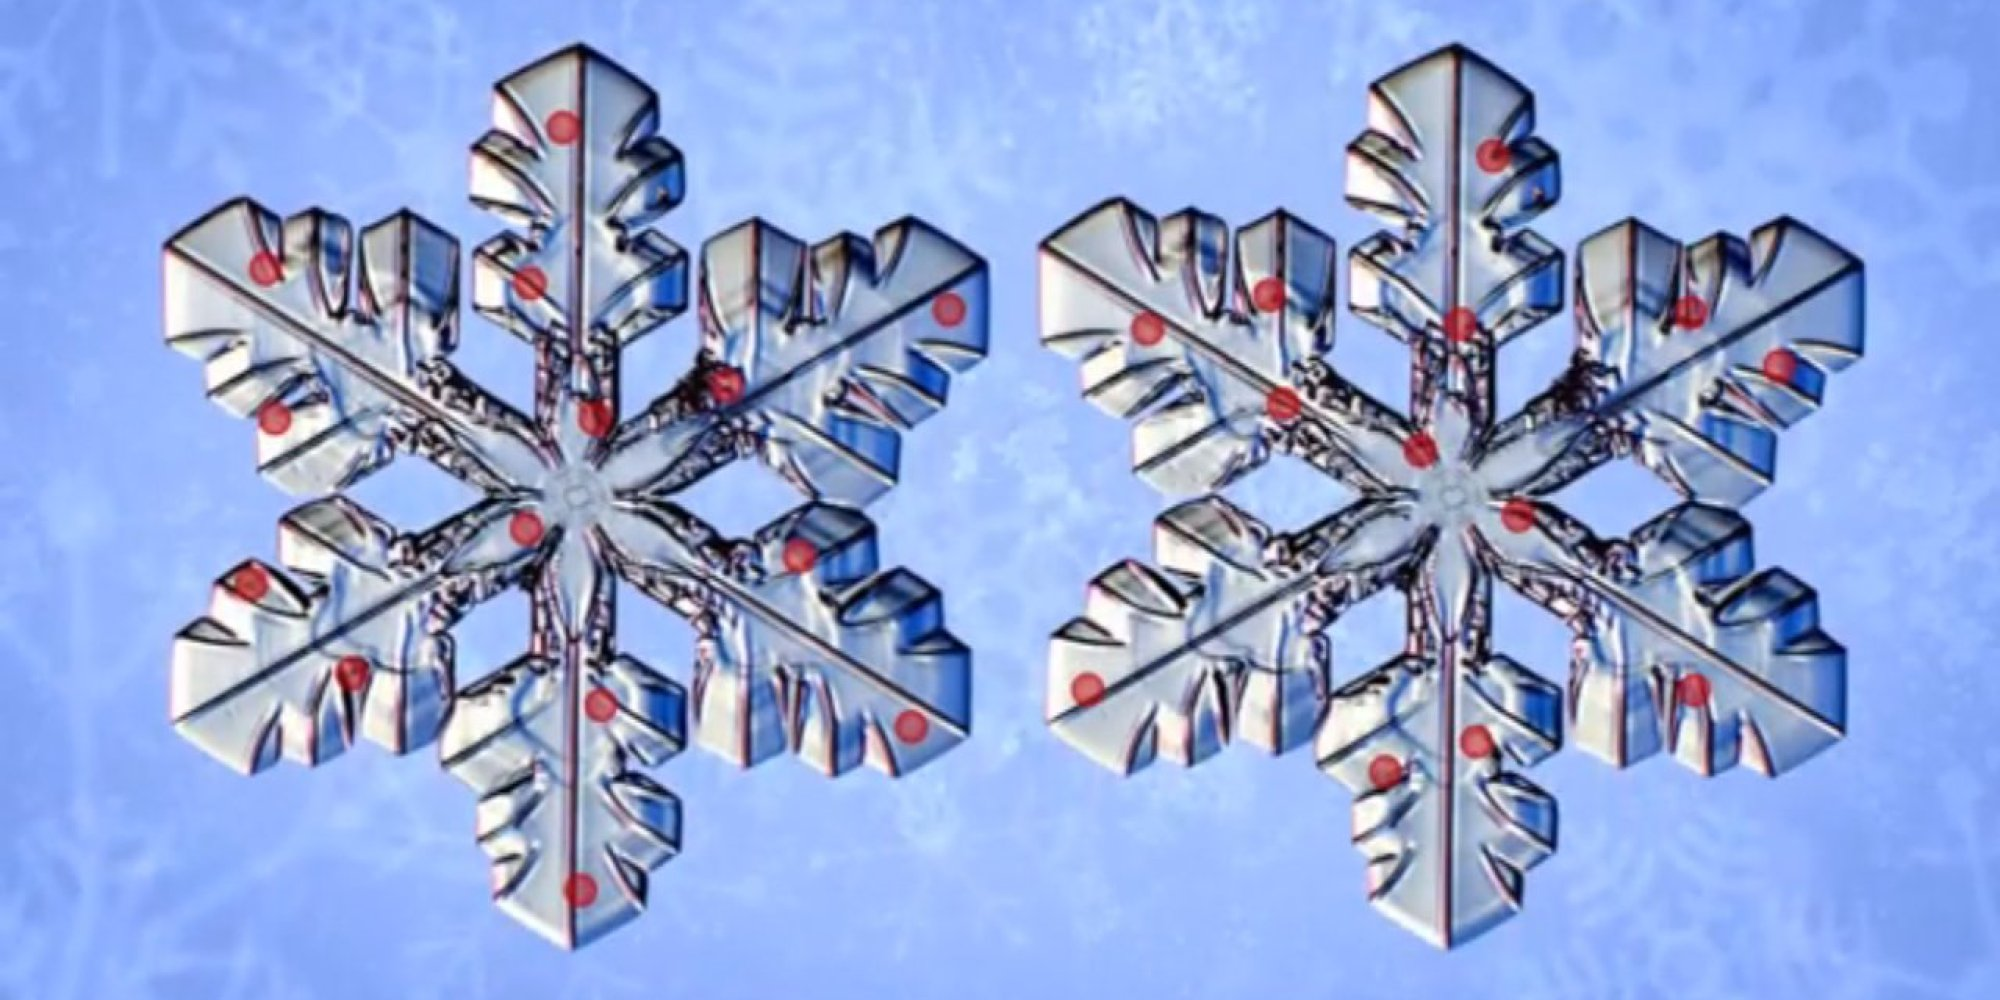 it u0027s true that no two snowflakes are alike but not for the reason